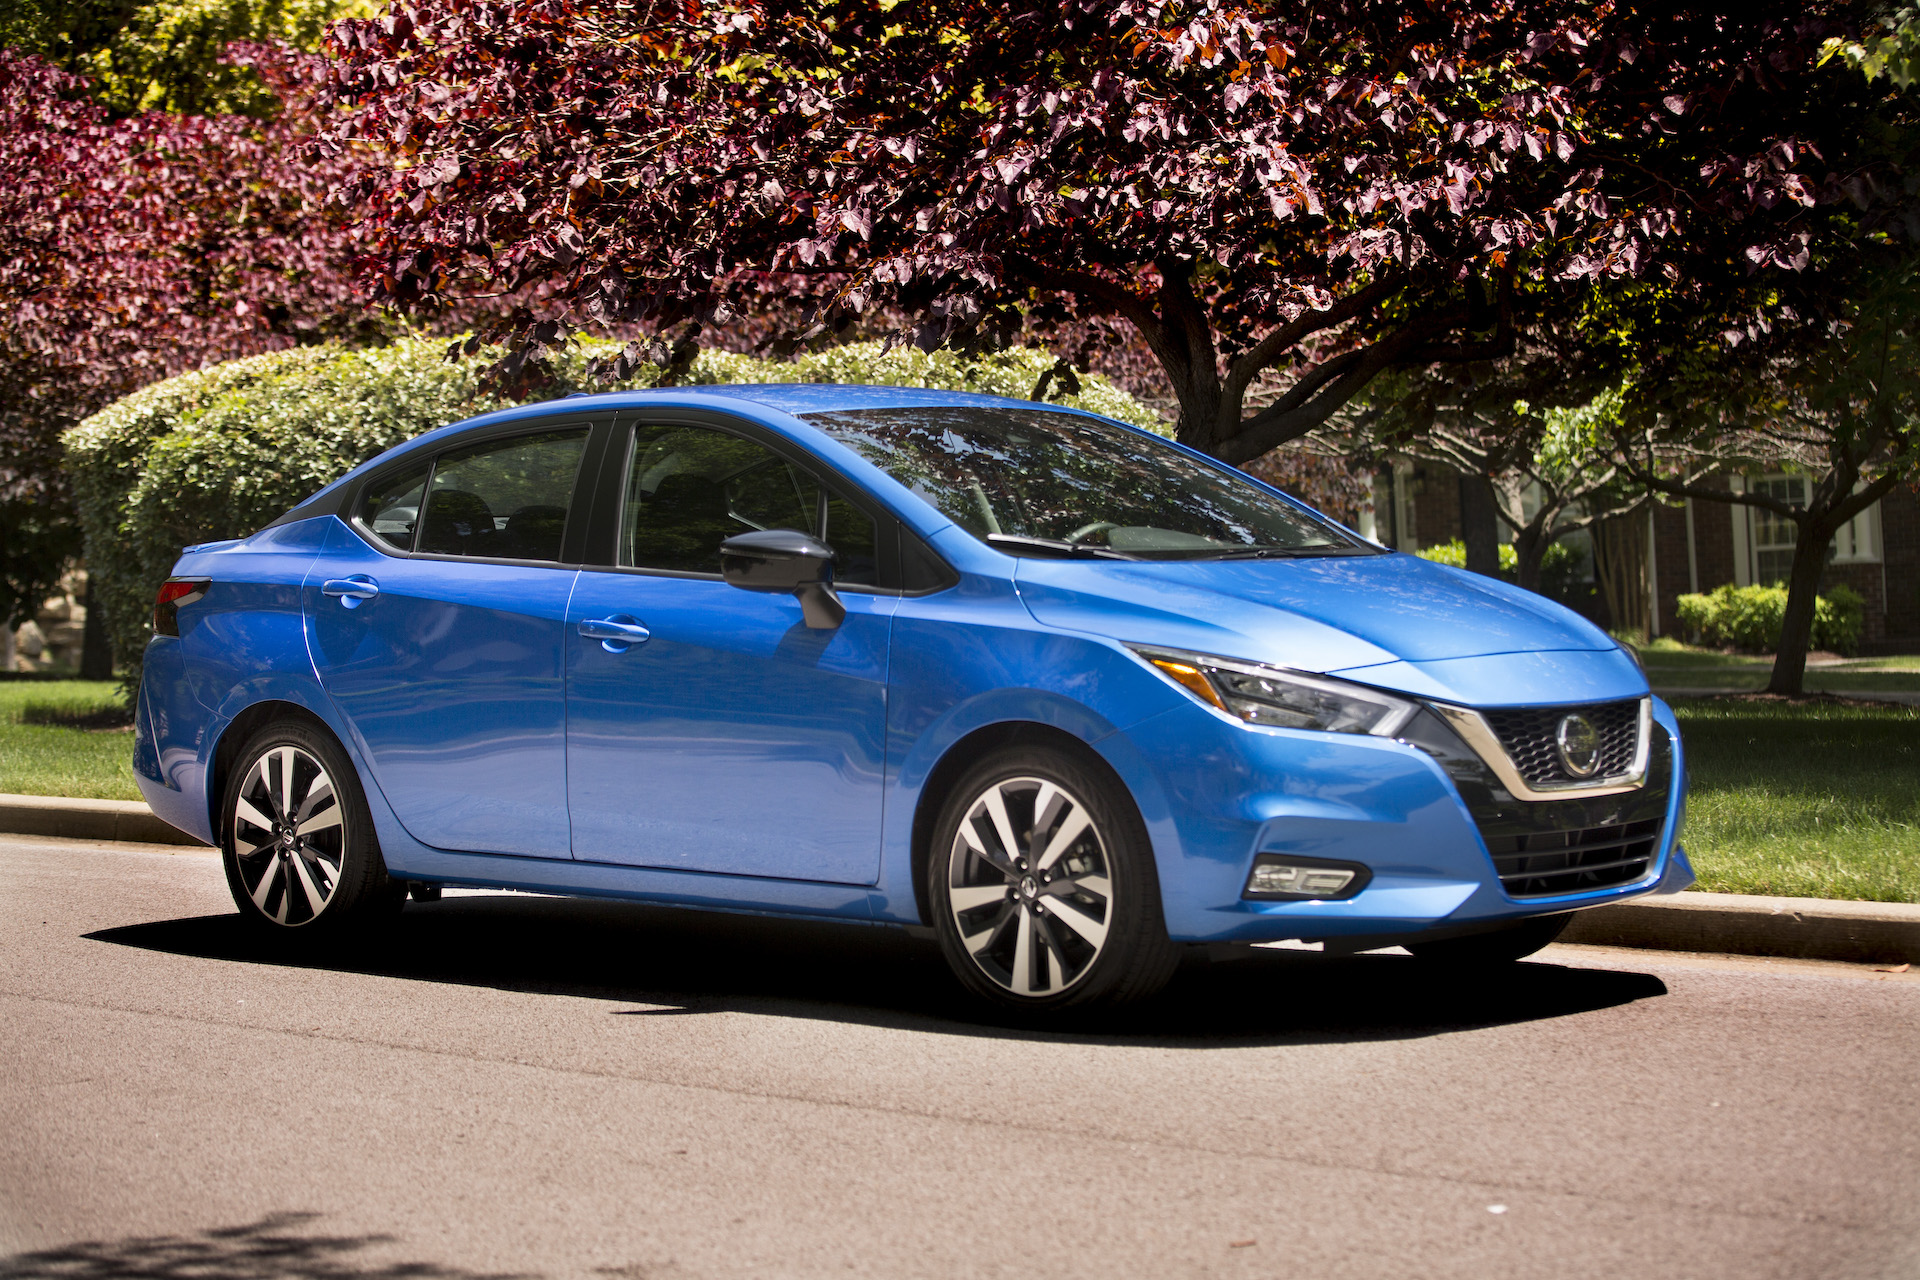 New And Used Nissan Versa Prices Photos Reviews Specs The Car Connection